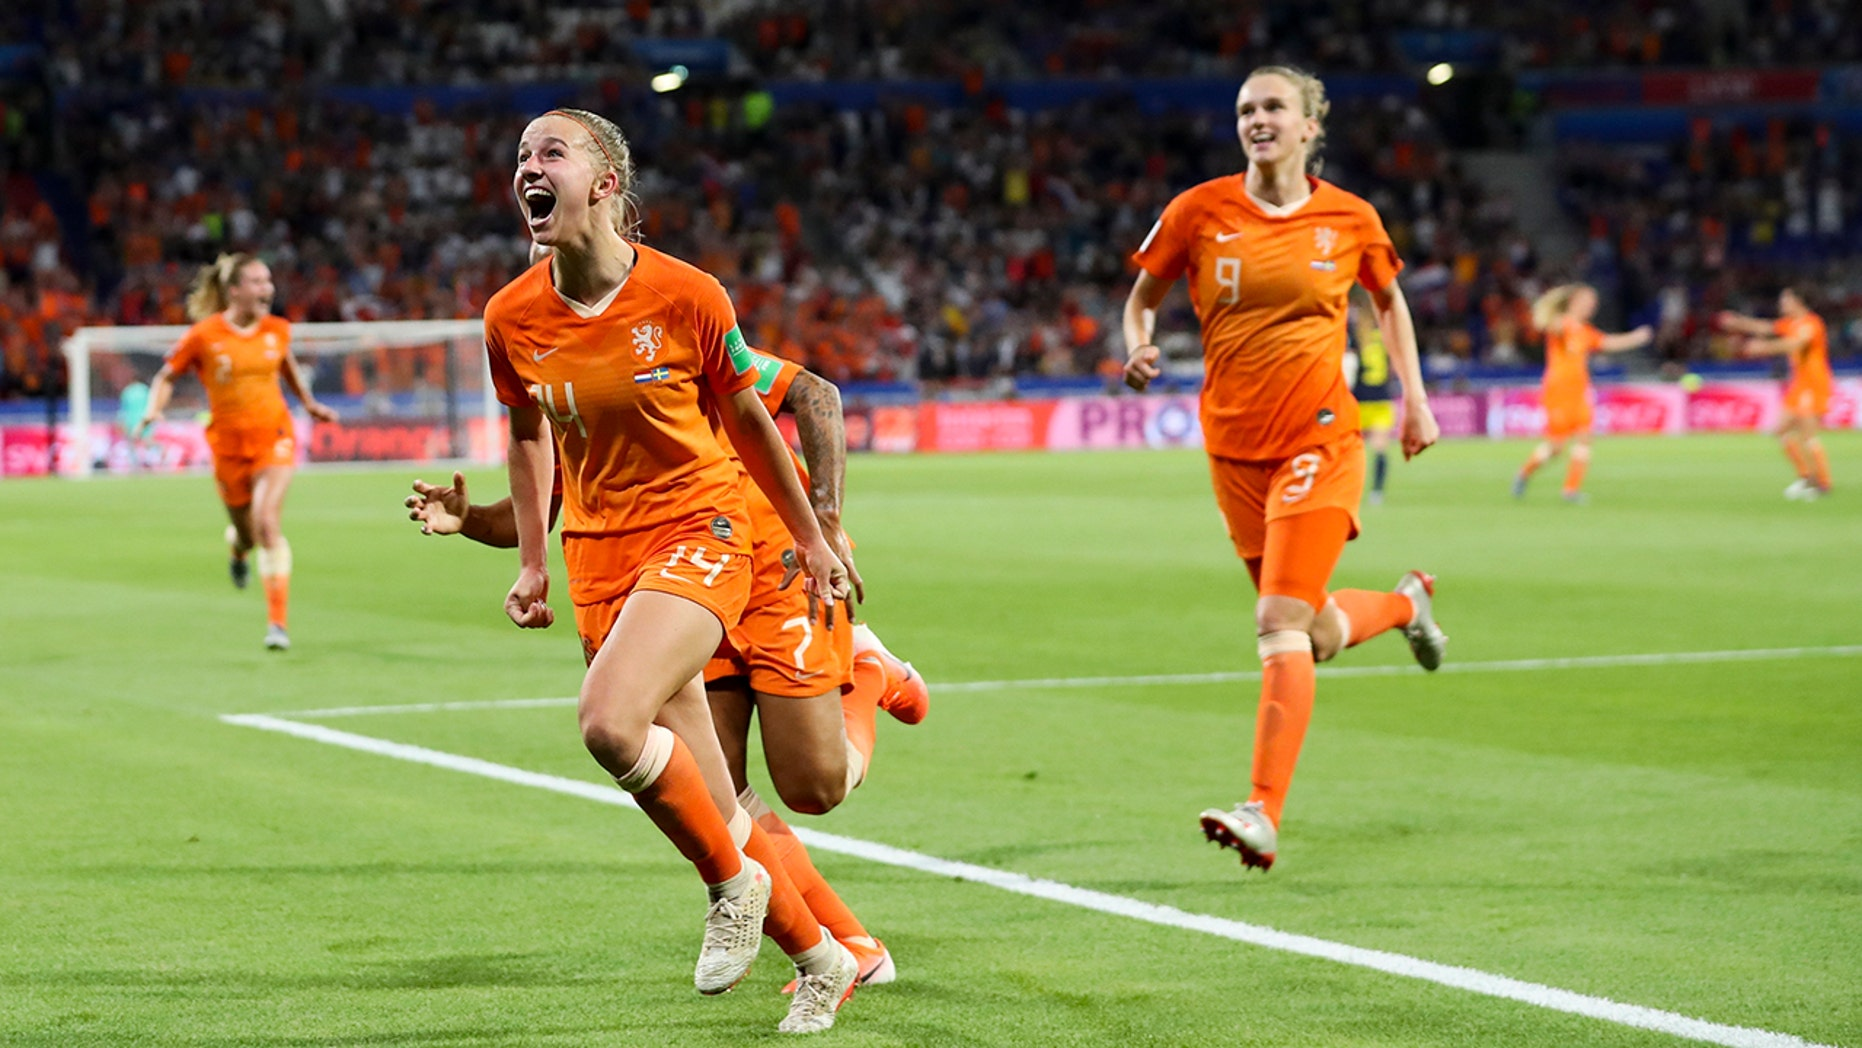 Netherlands' Jackie Groenen, foreground, celebrates after scoring during the Women's World Cup semifinal soccer match between the Netherlands and Sweden, at the Stade de Lyon outside Lyon, France, Wednesday, July 3, 2019. (AP Photo/Francisco Seco)